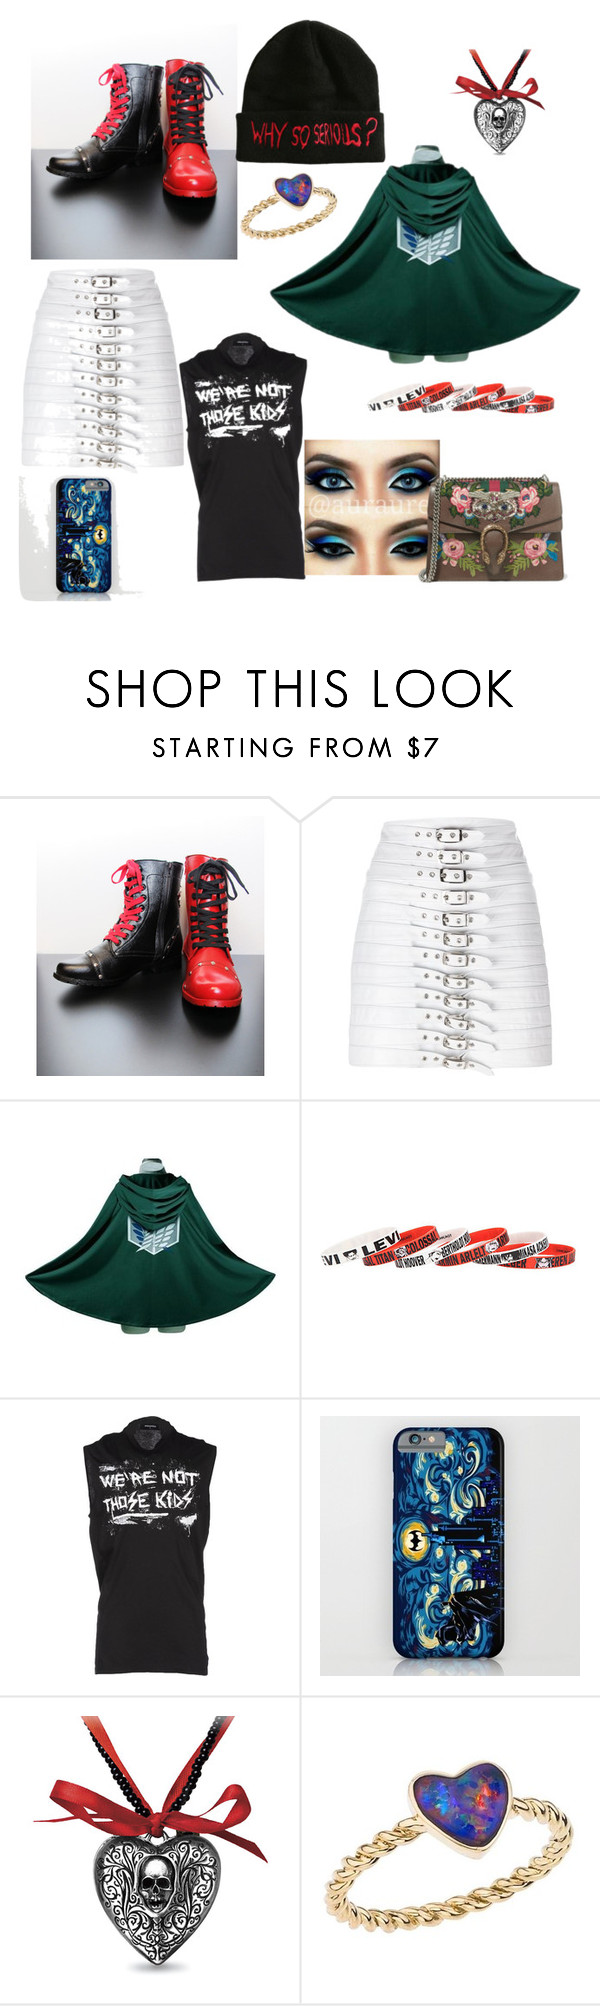 """""""Best Effing Thing I'll Ever Wear"""" by lunamaize ❤ liked on Polyvore featuring Manokhi, Dsquared2, Katherine Jetter and Gucci"""